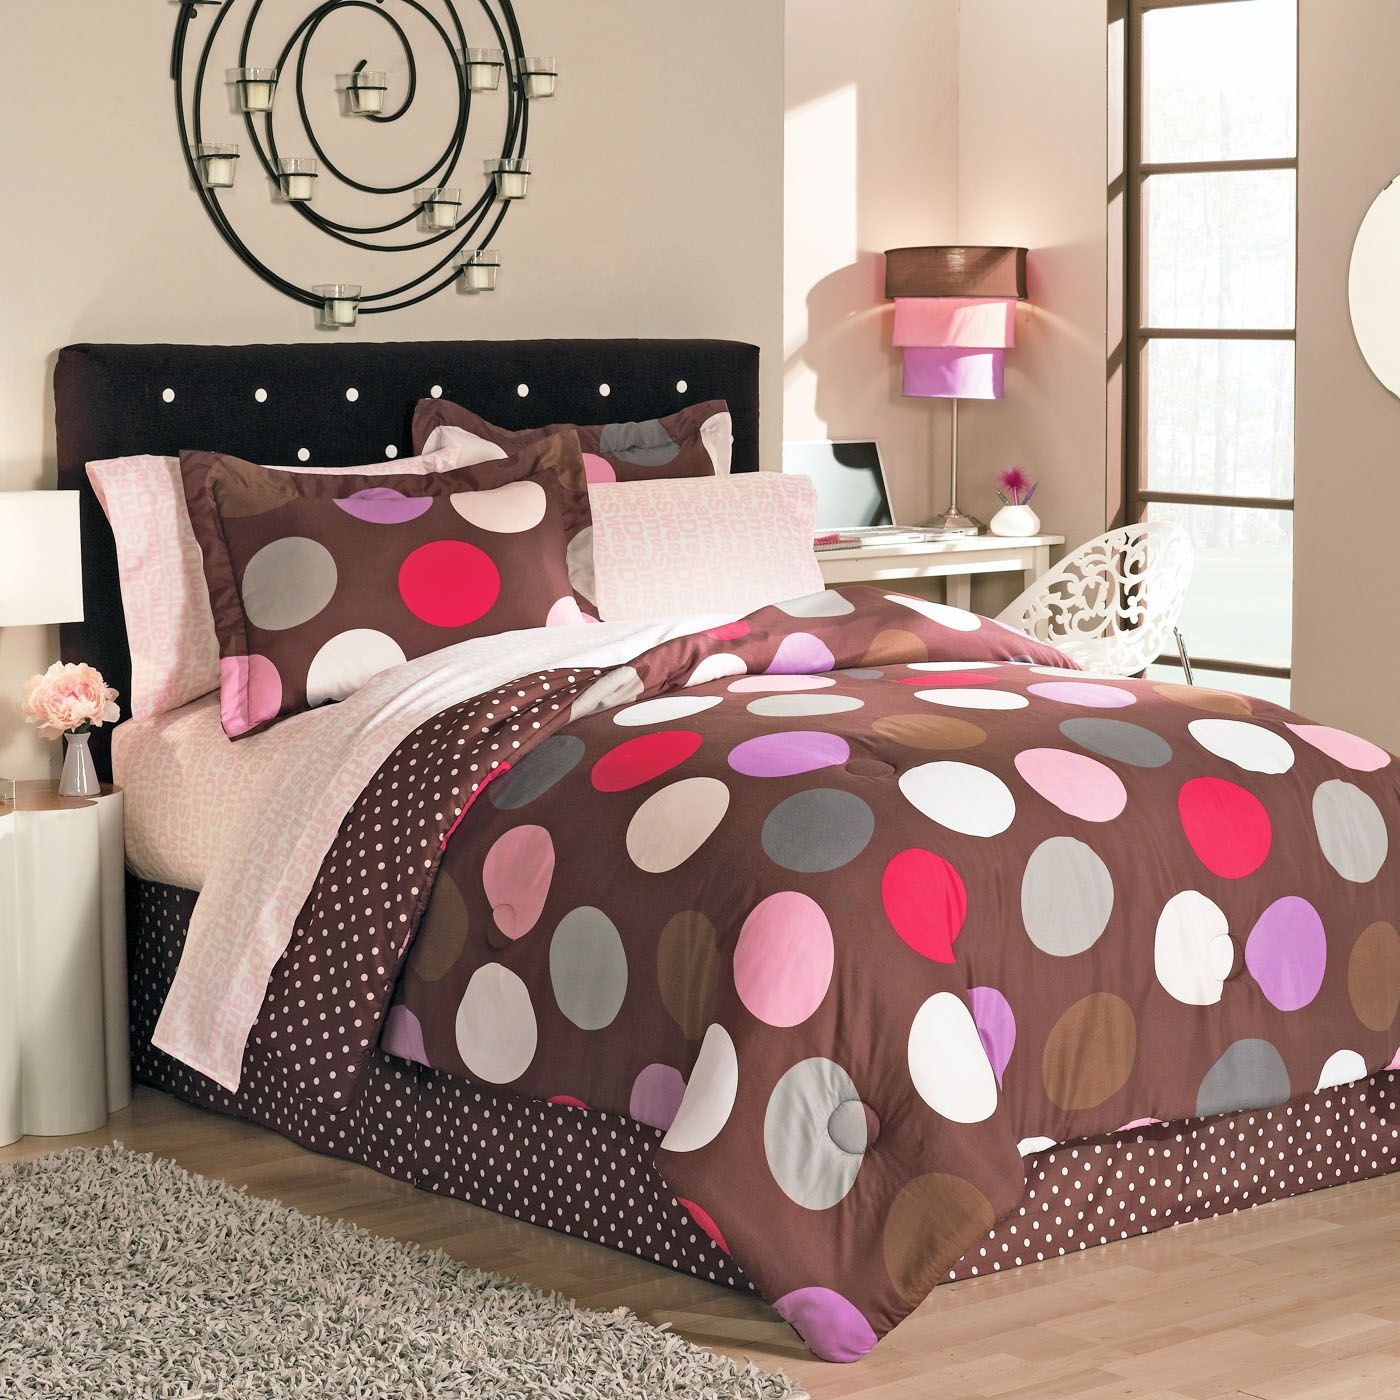 bed full room and pretty sheets cover quilt duvet for size cute sets cozy covers queen of colorful bedding cotton comforters comforter bedroom